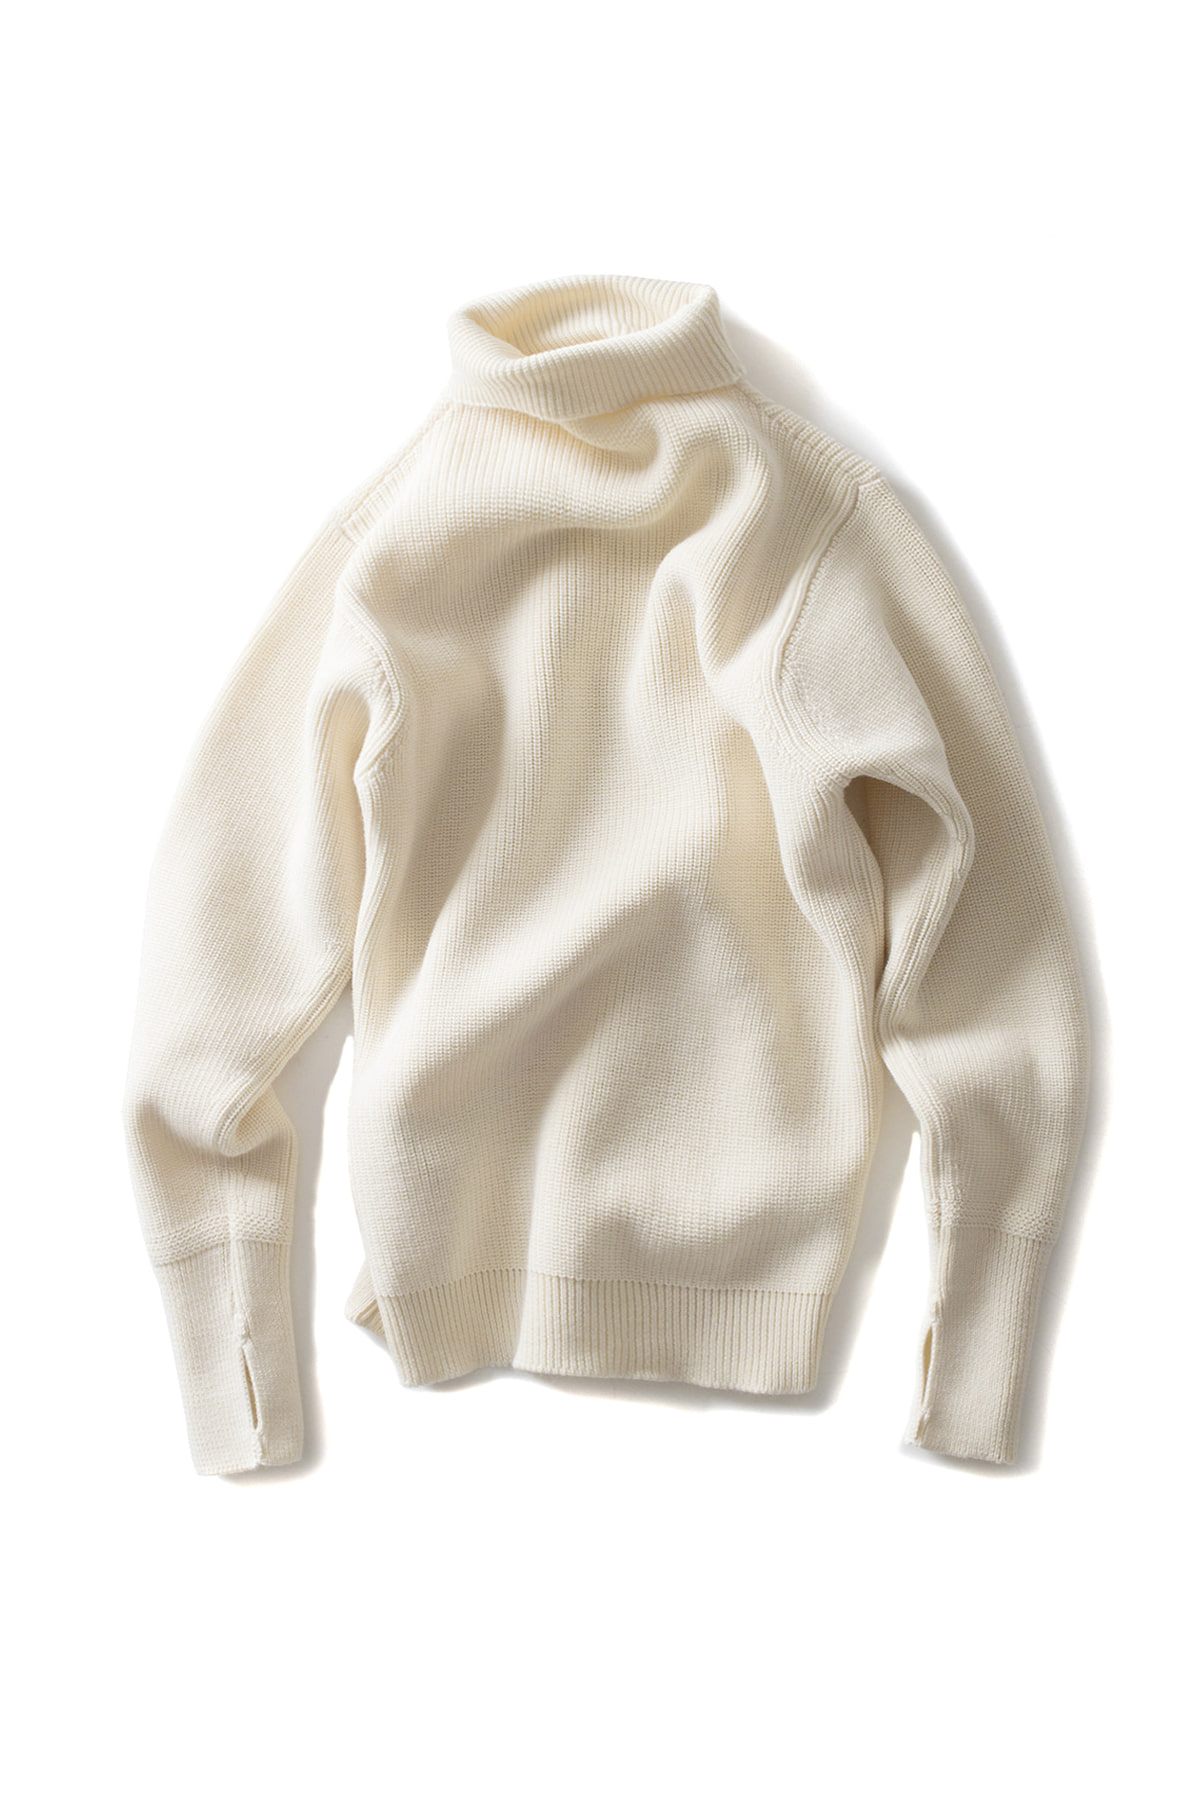 Andersen-Andersen : Sailor Turtleneck (Off White)